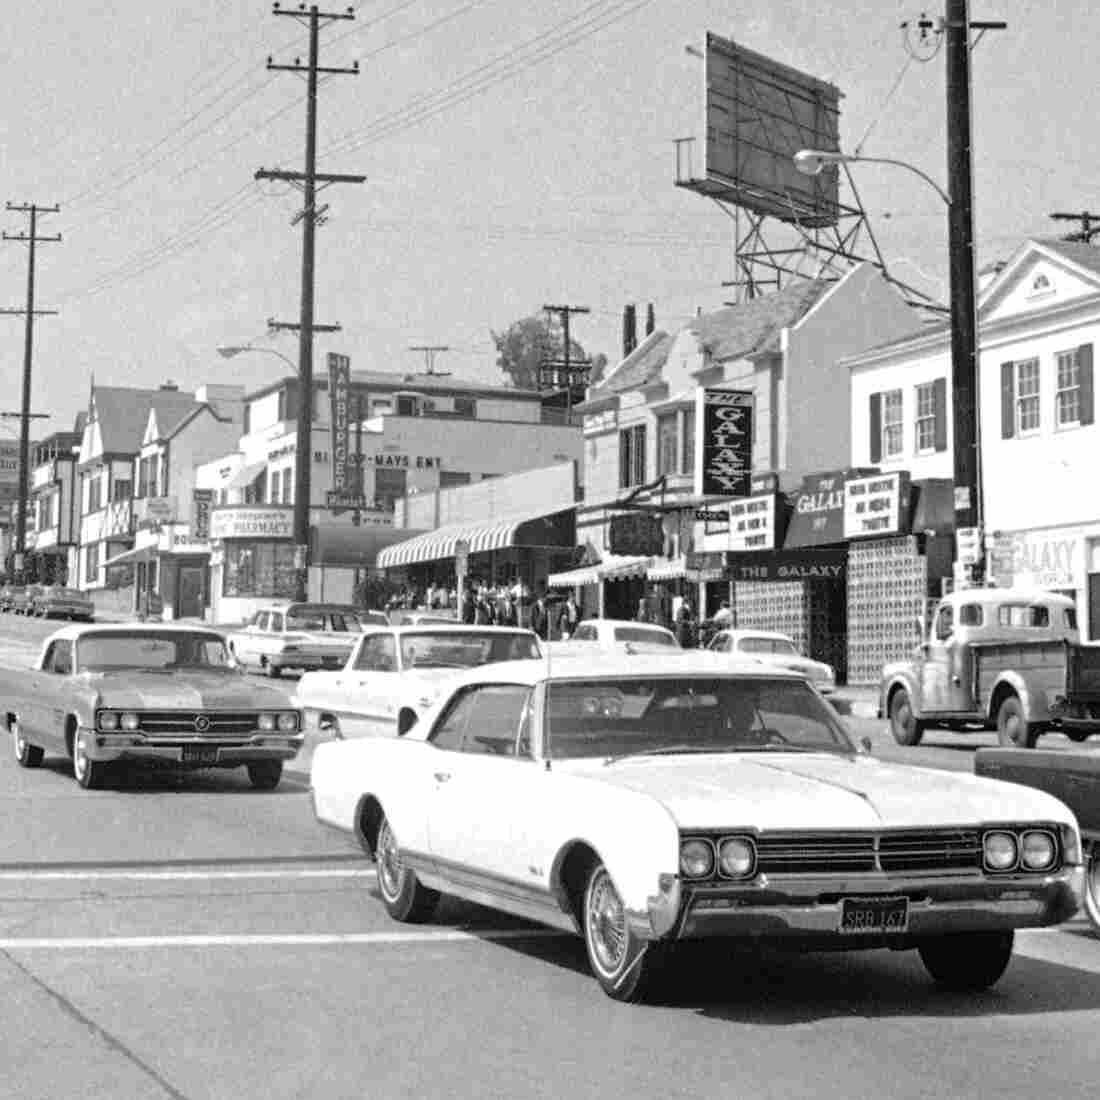 Ever-Changing L.A. Links Walter Mosley To His Mid-Century P.I.